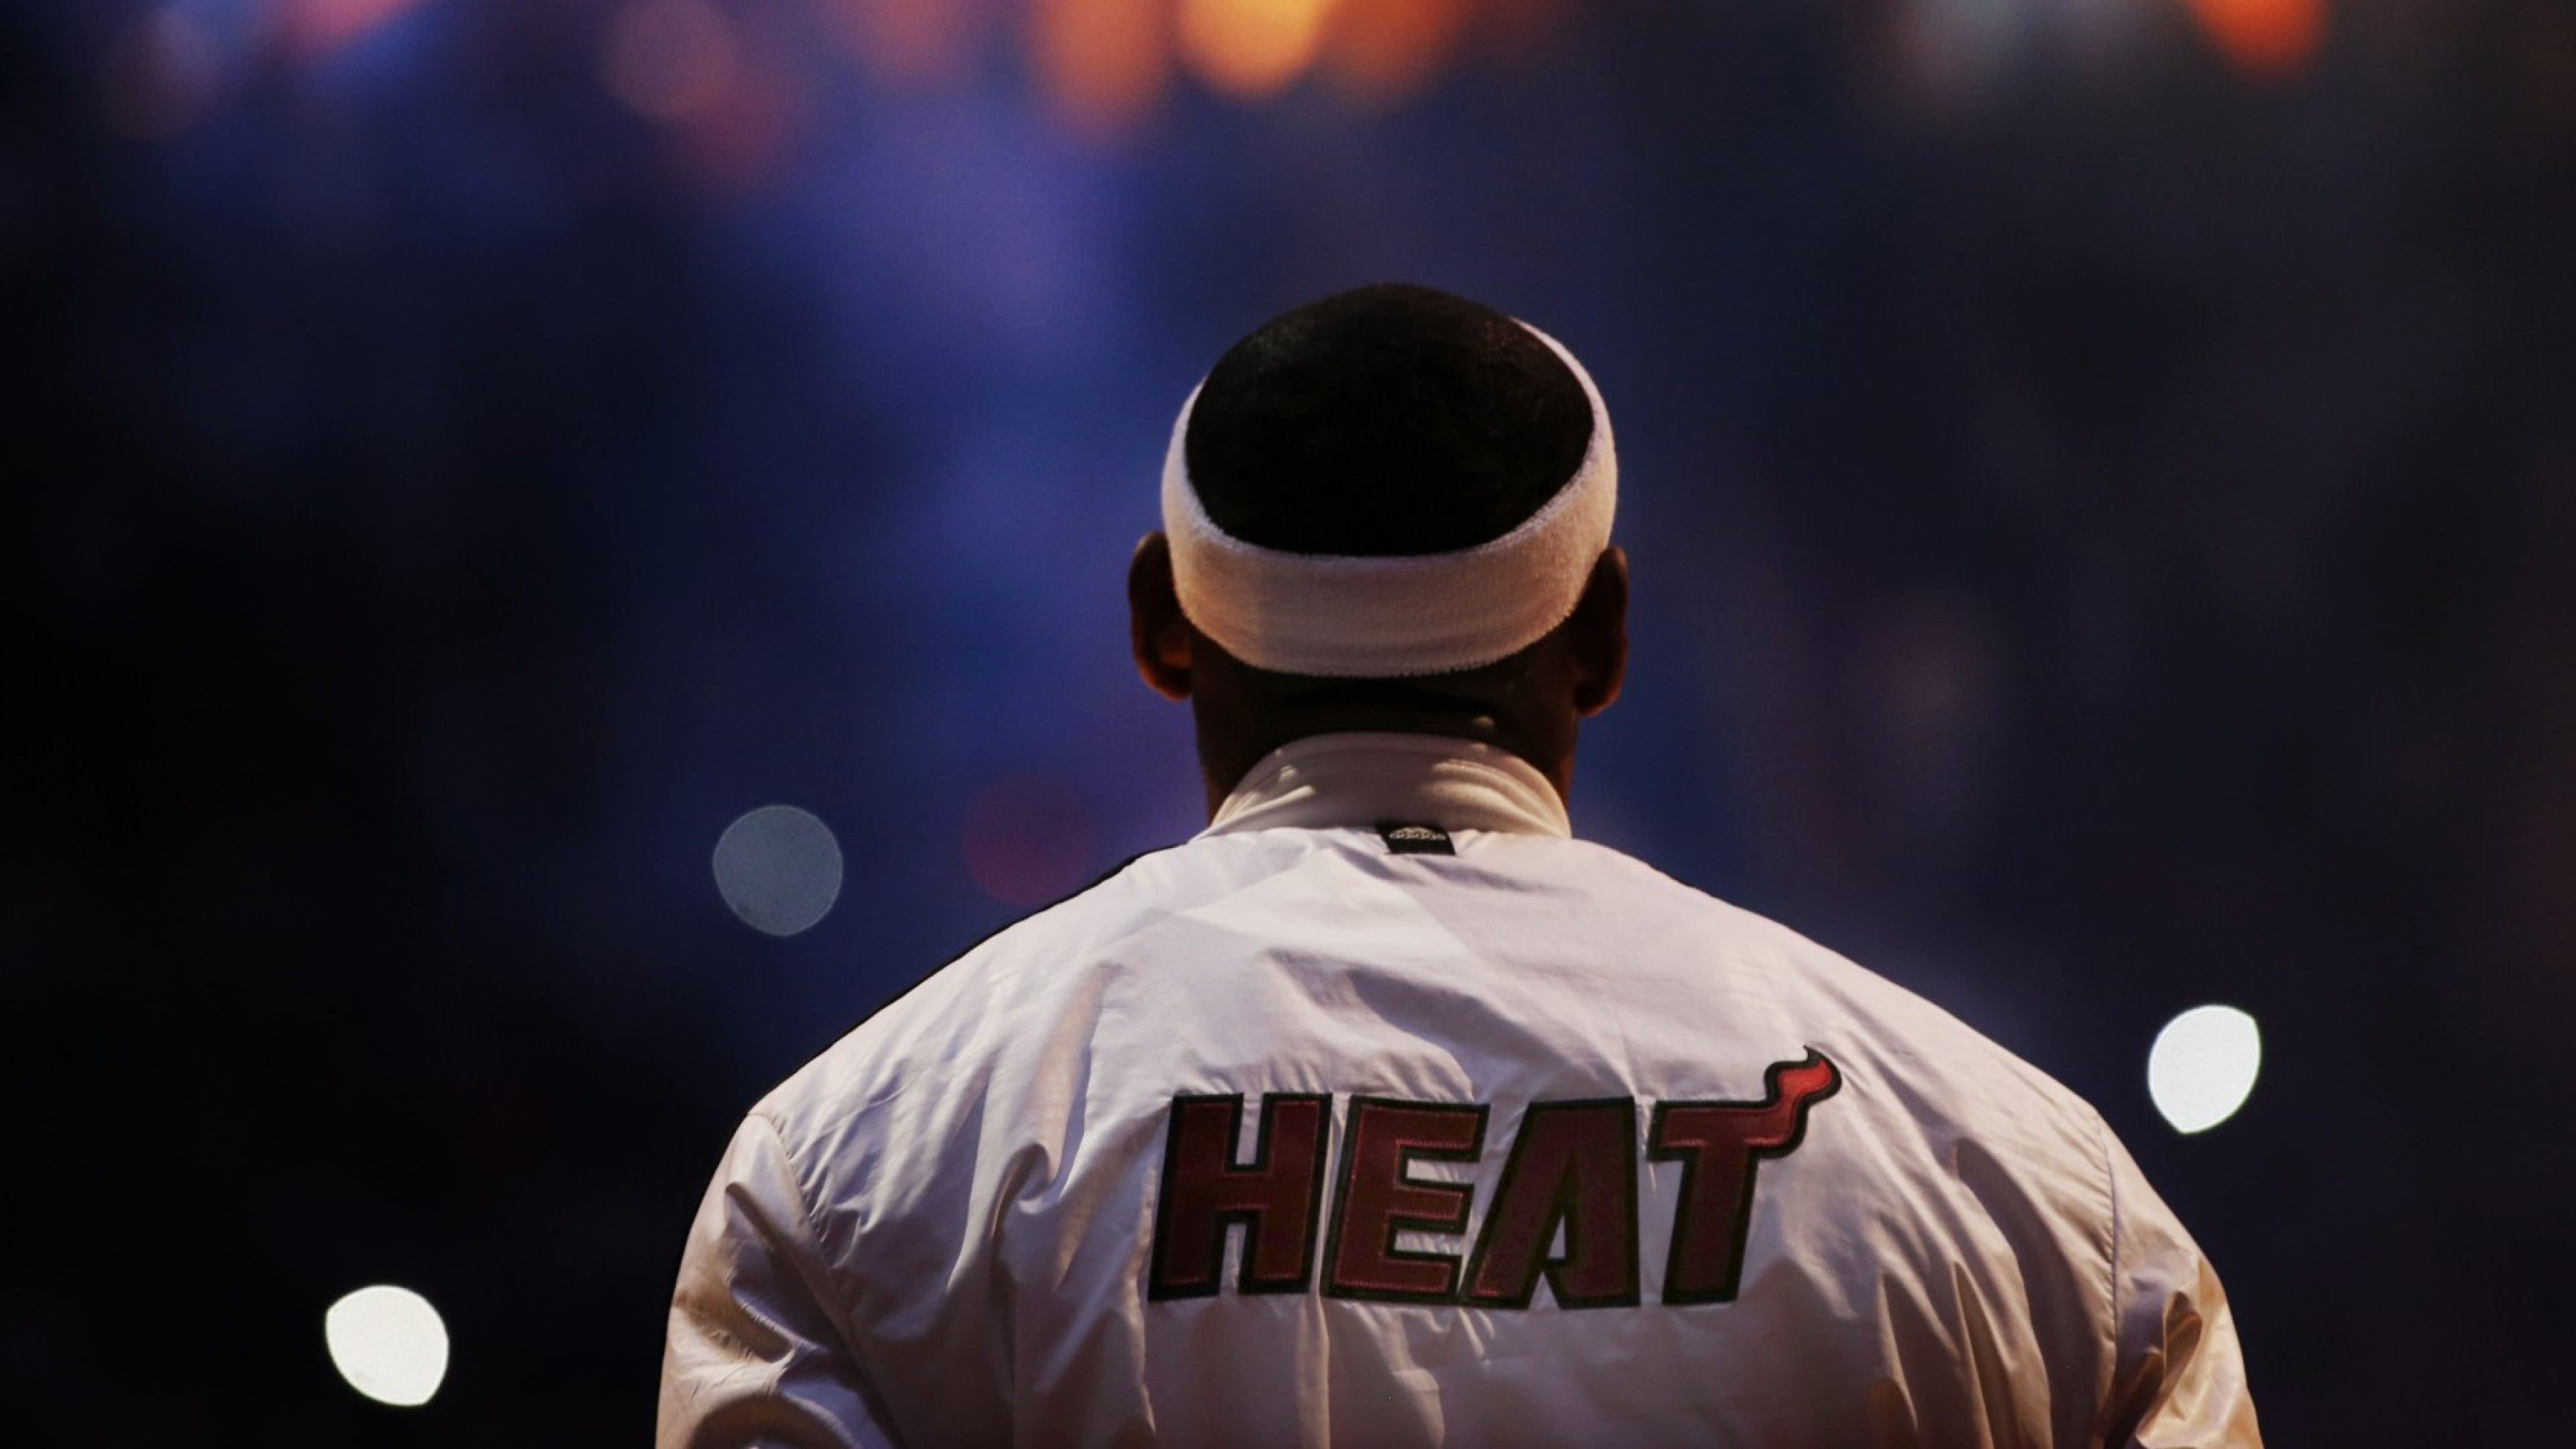 Kyrie Irving Wallpaper 2013 Hd Miami Heat Iphone Wallpaper 2018 68 Images